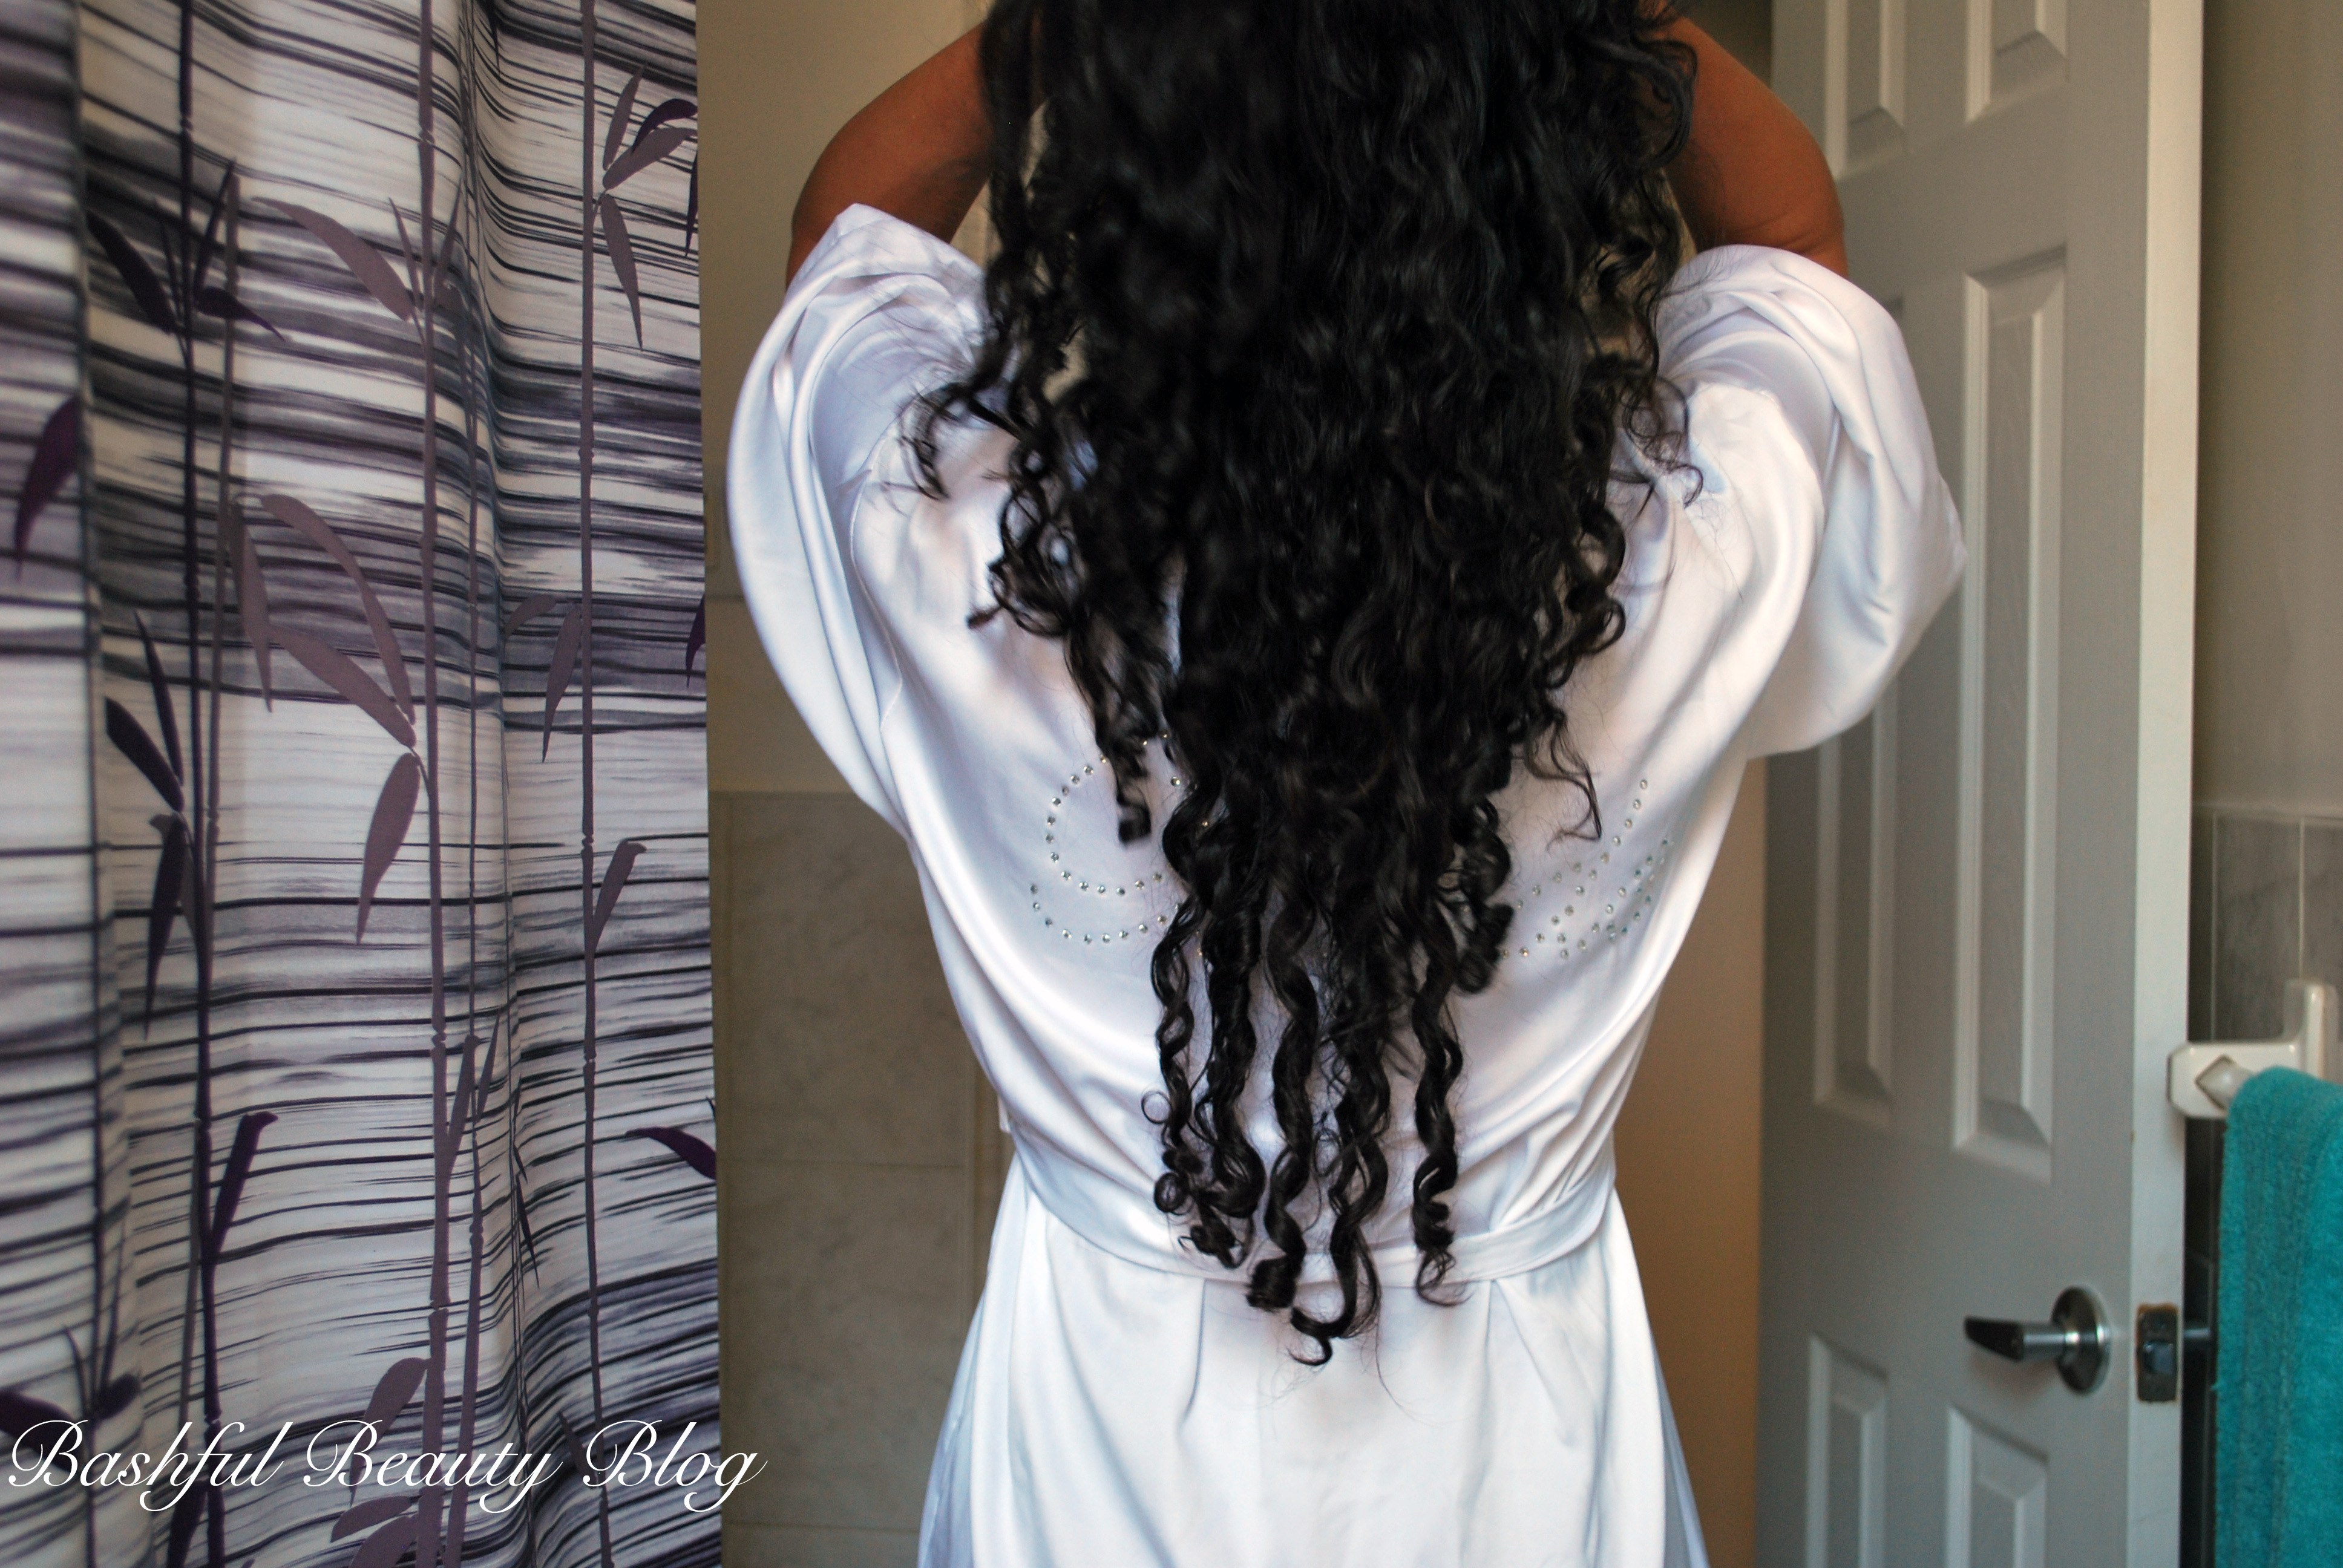 Manual Healthy Hair Routine